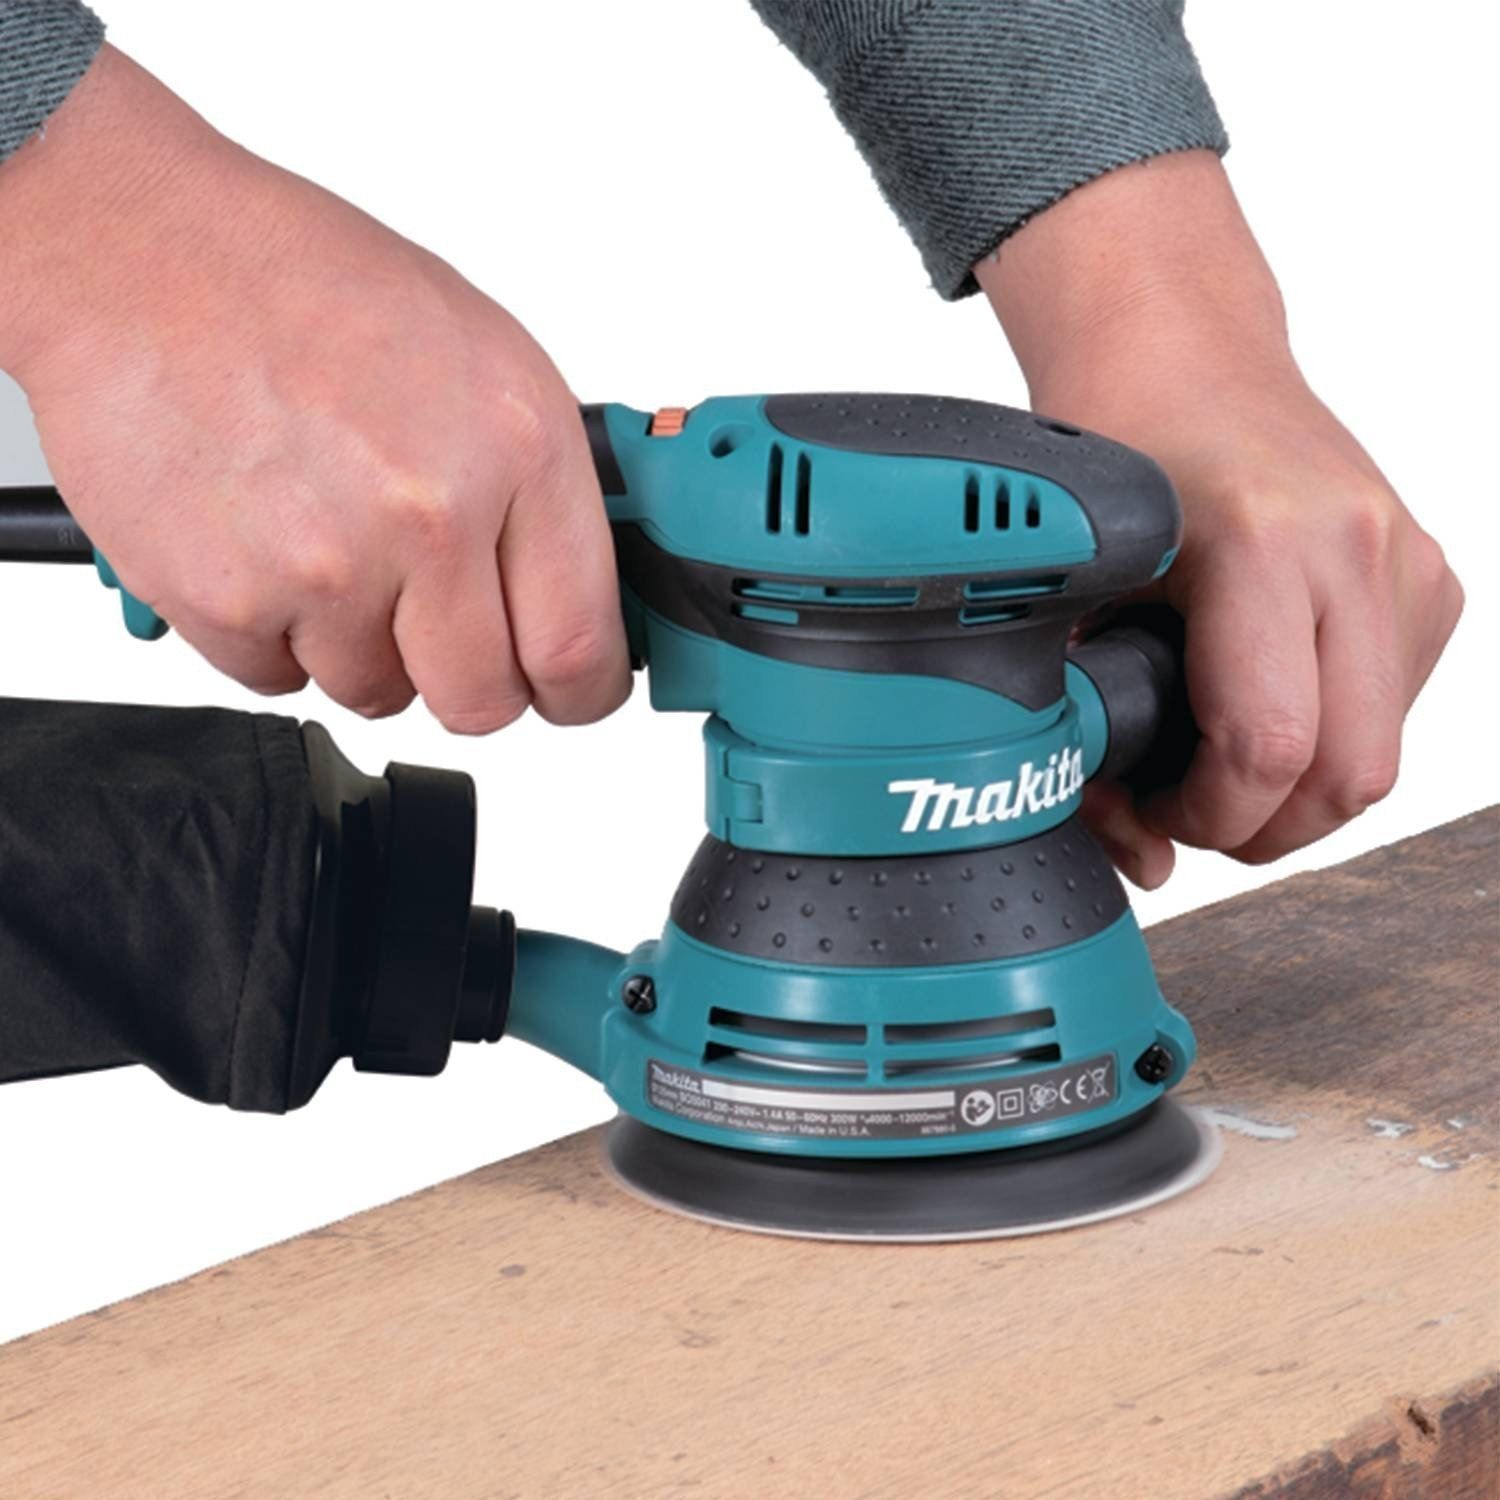 Random Orbital Sander Awesome Iconic Makita Bo5041 Review You Won T Belive What We Ve Found 2018 While Test Best Random Orbital Sander Woodworking Makita